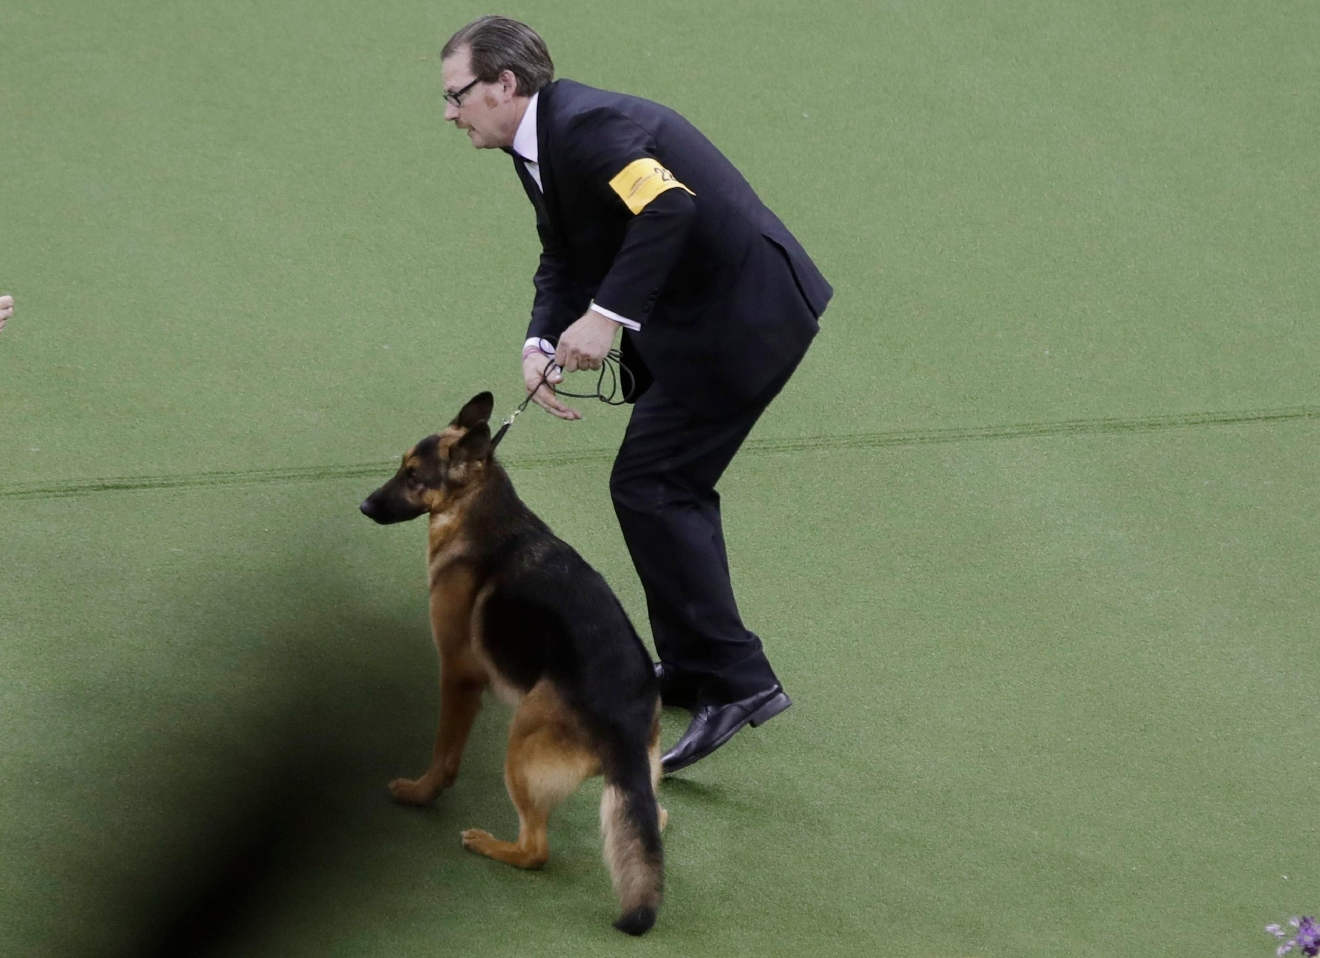 A handler reacts after Rumor, a German shepherd, won Best In Show at the 141st Westminster Kennel Club Dog Show on Tuesday, Feb. 14, 2017, in New York. (AP Photo/Frank Franklin II)